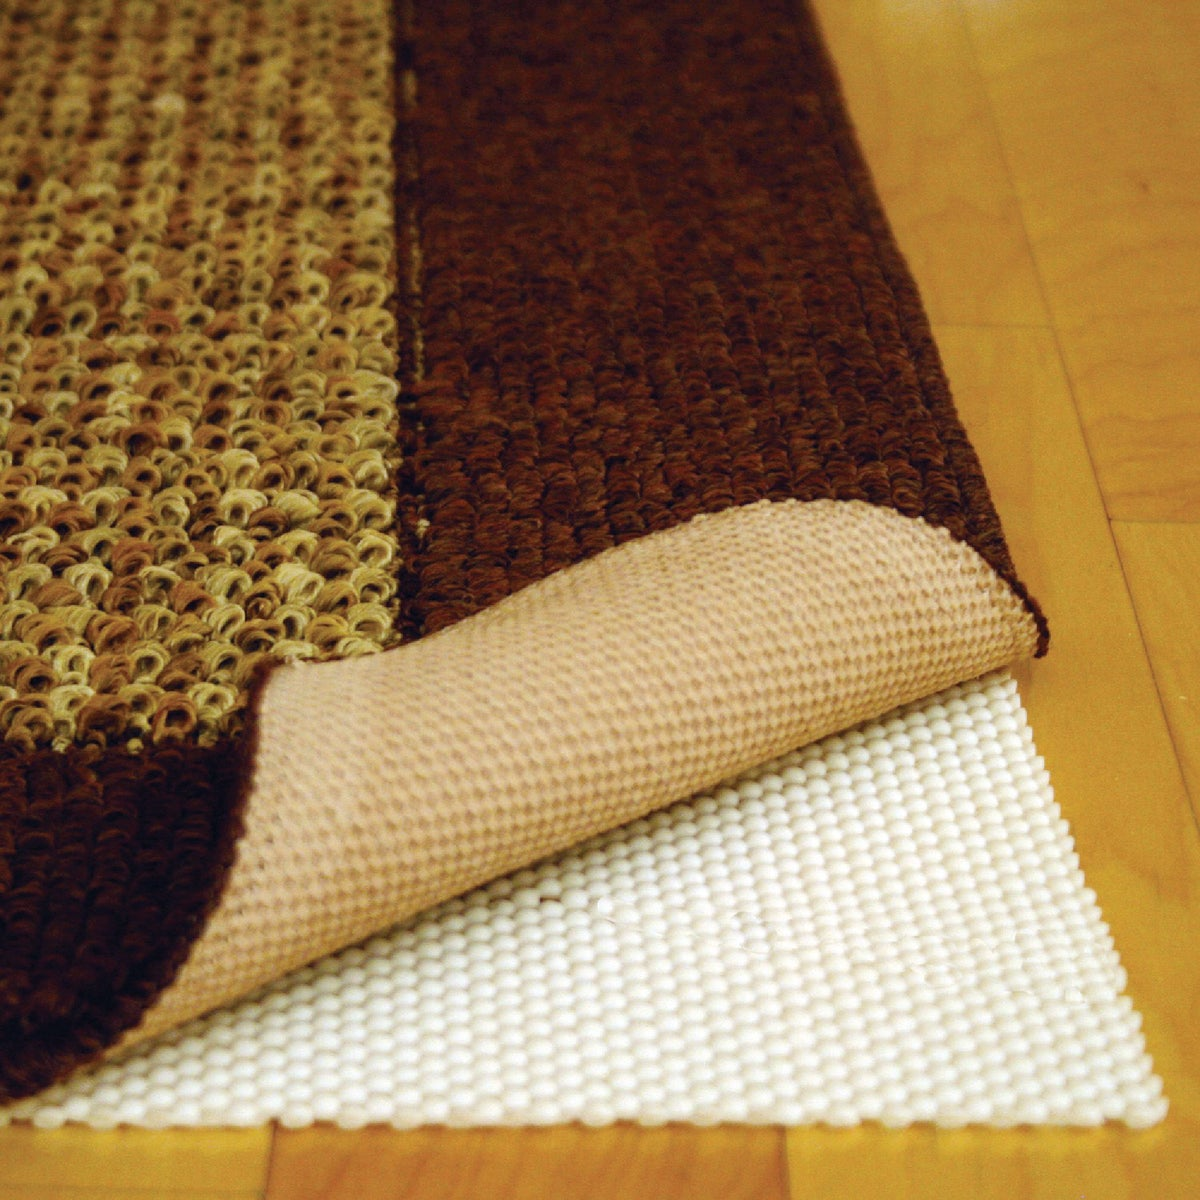 28X42 BETTER RUG PAD - RU004-999-028042 by Mohawk Home Products